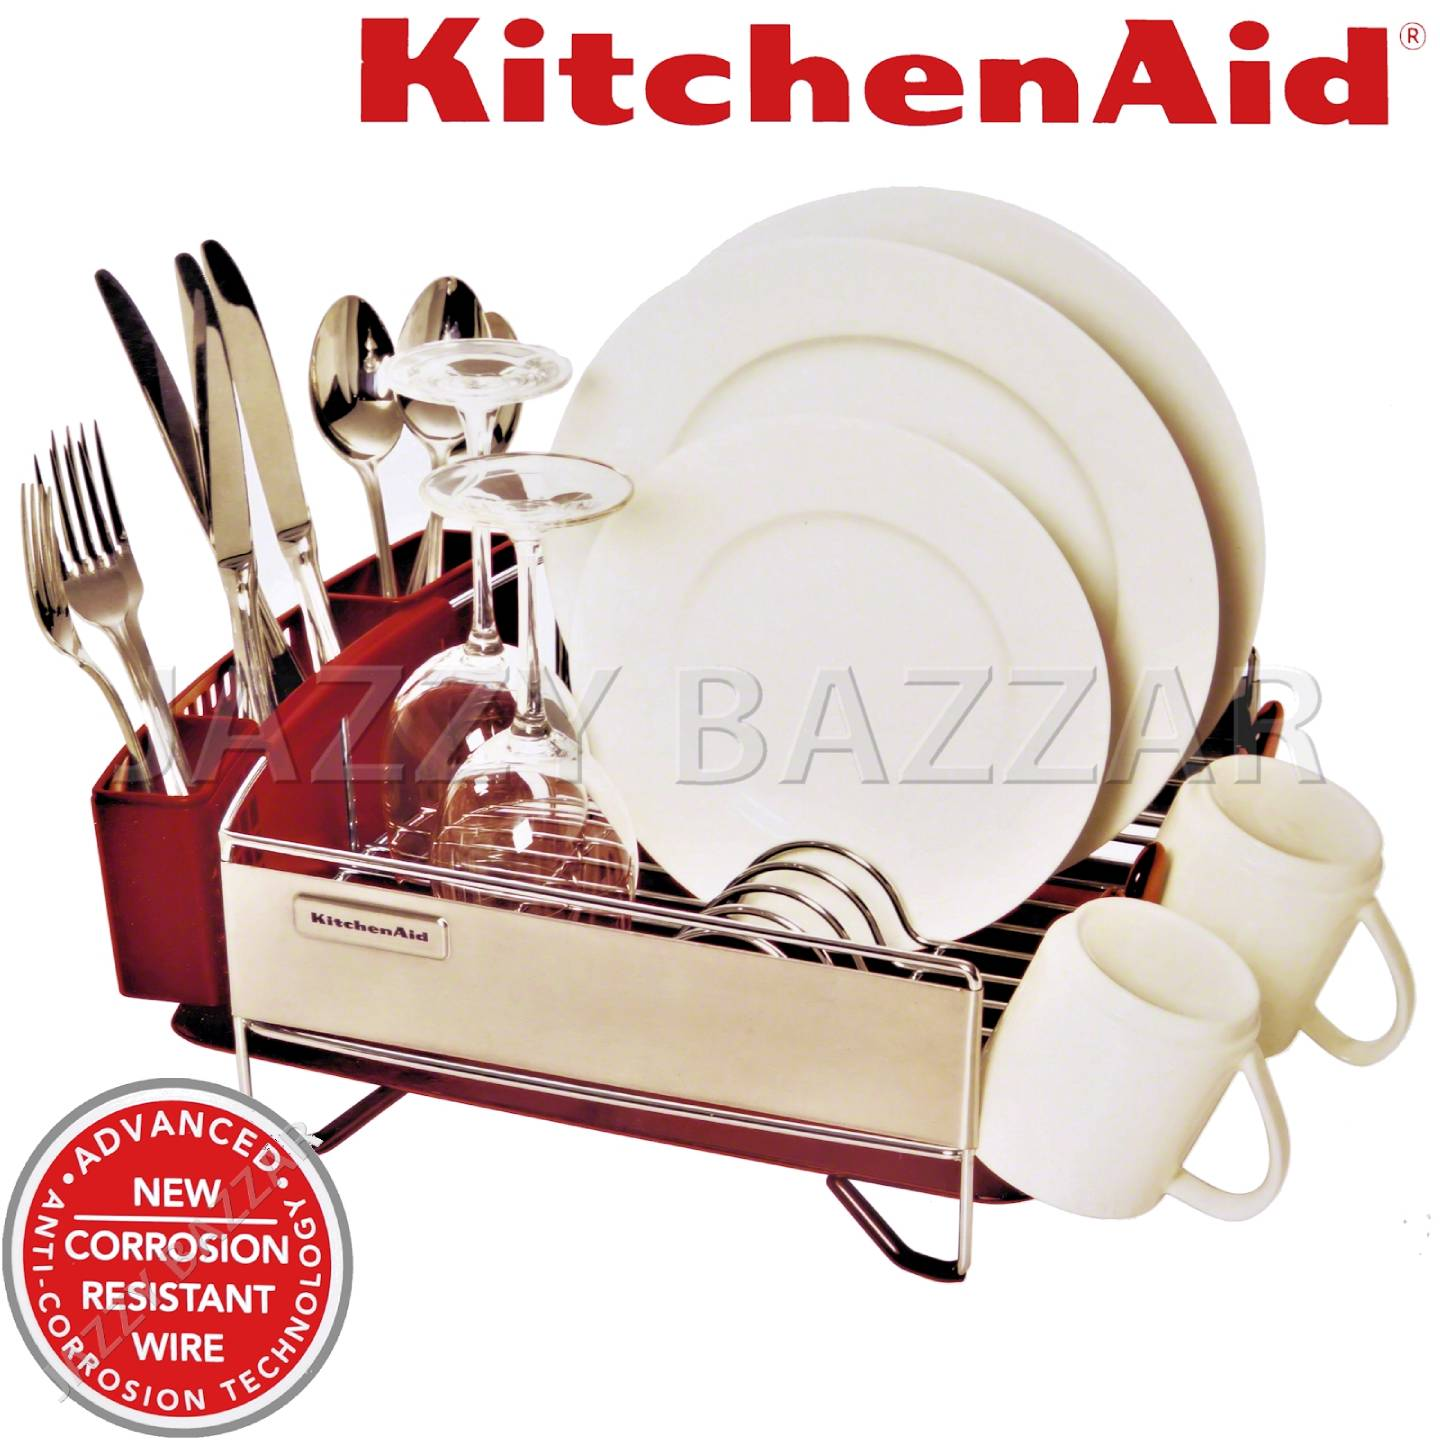 3pc Kitchen Aid Red Stainless Steel Dish Drying Rack Cutlery Drainer Tray New Ebay